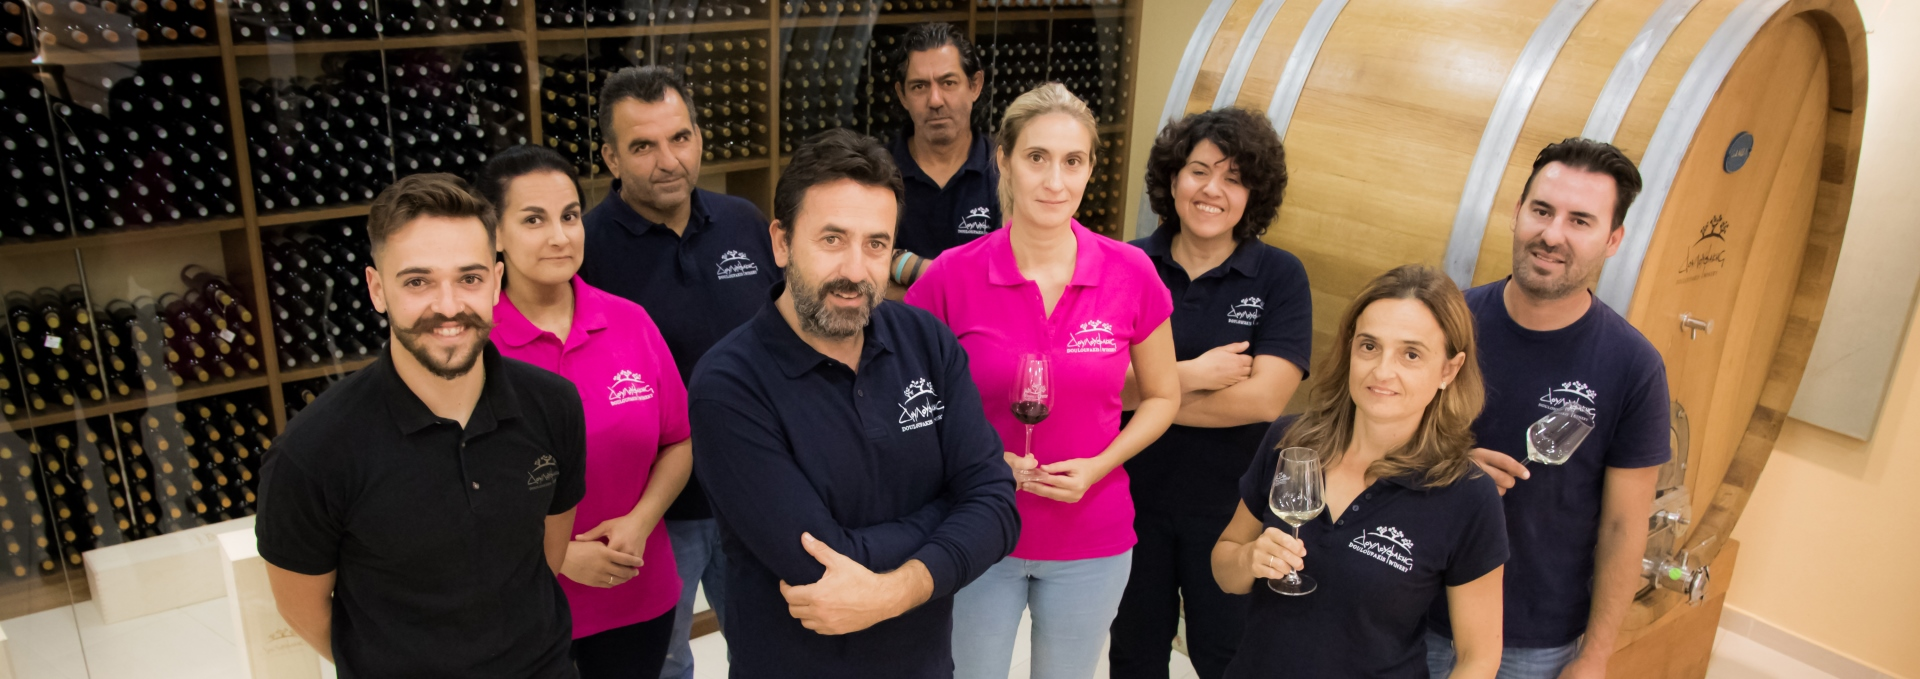 Team of  Douloufakis Winery from Dafnes, Crete, Greece